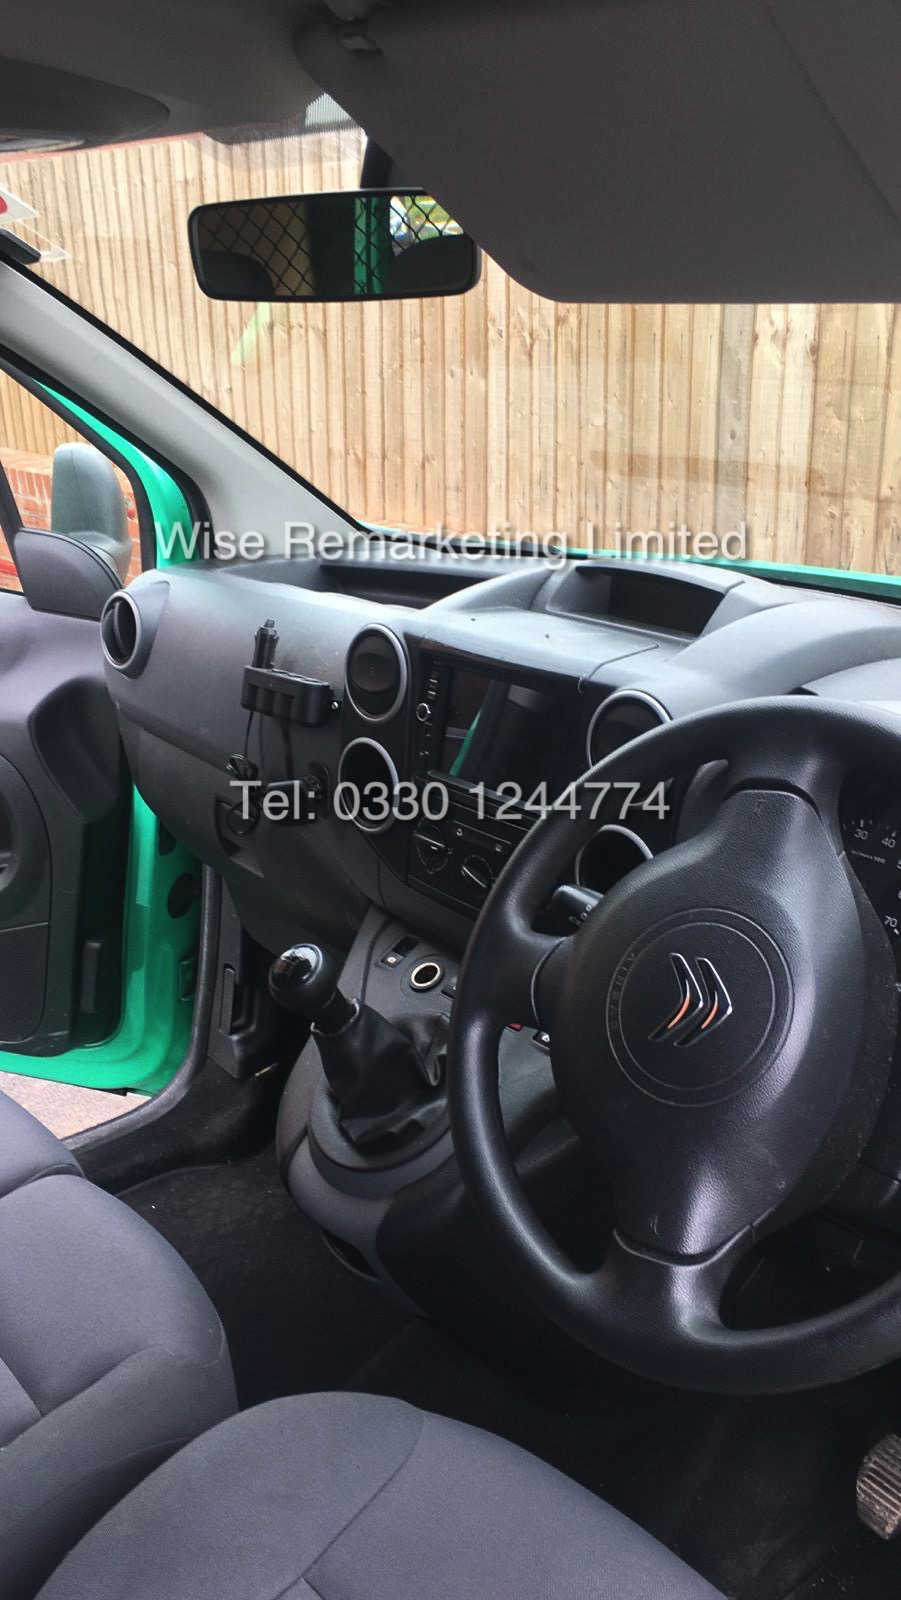 CITROEN BERLINGO 1.6 HDI LX AIRDREAM EDITION *2015 SPEC* - Image 9 of 11